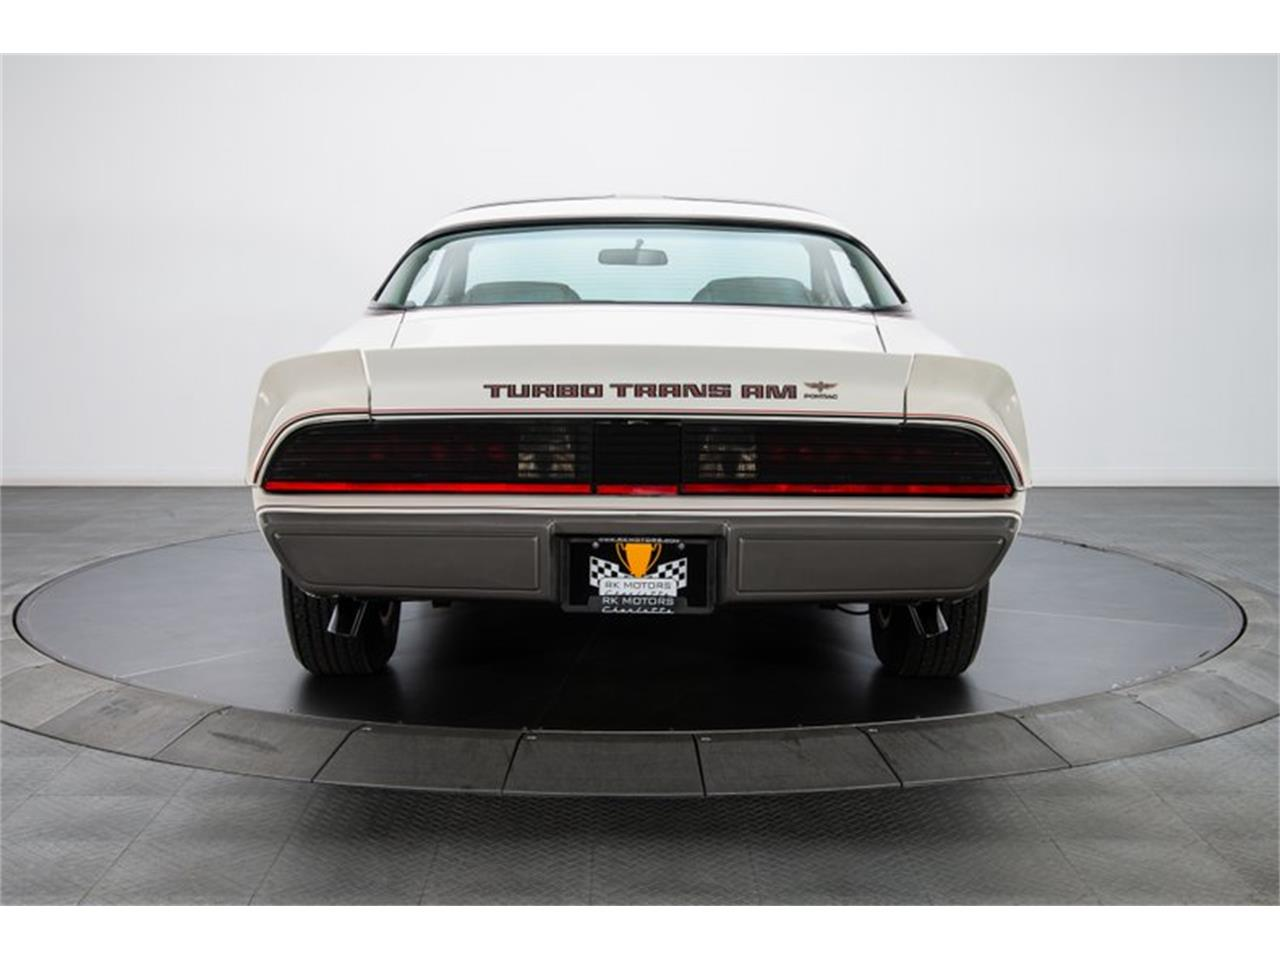 1980 Pontiac Firebird Trans Am Turbo Indy Pace Car Edition for sale in Charlotte, NC – photo 18